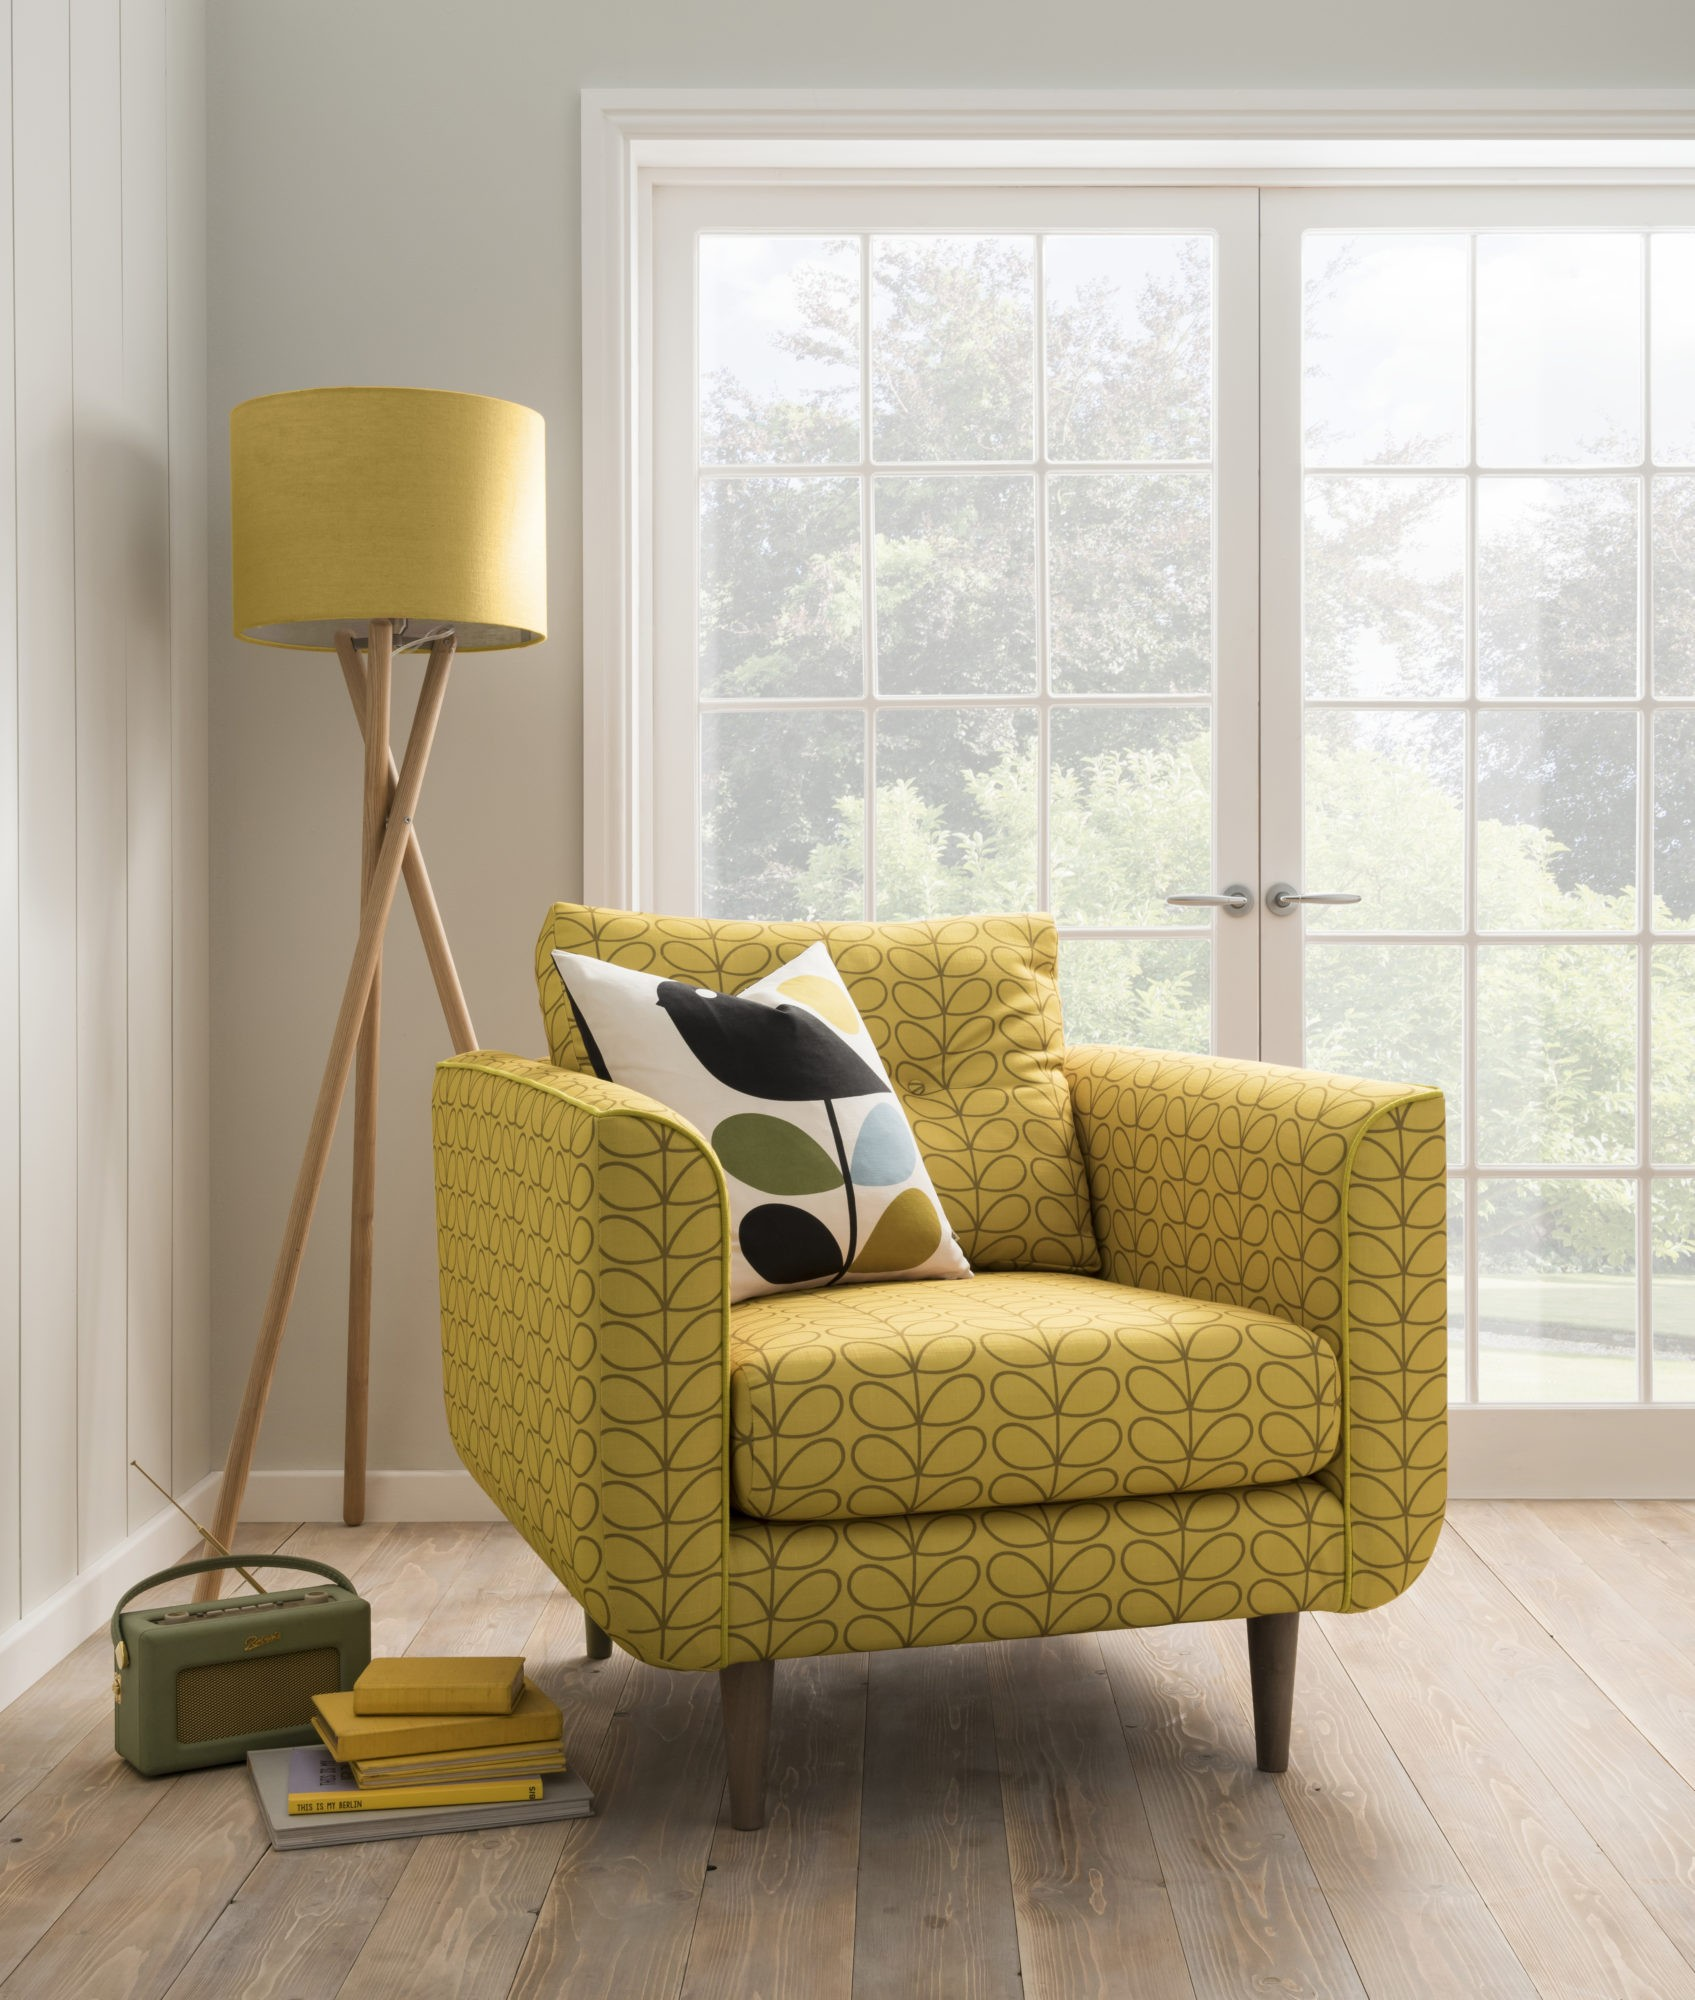 LINDEN CHAIR BY ORLA KIELY